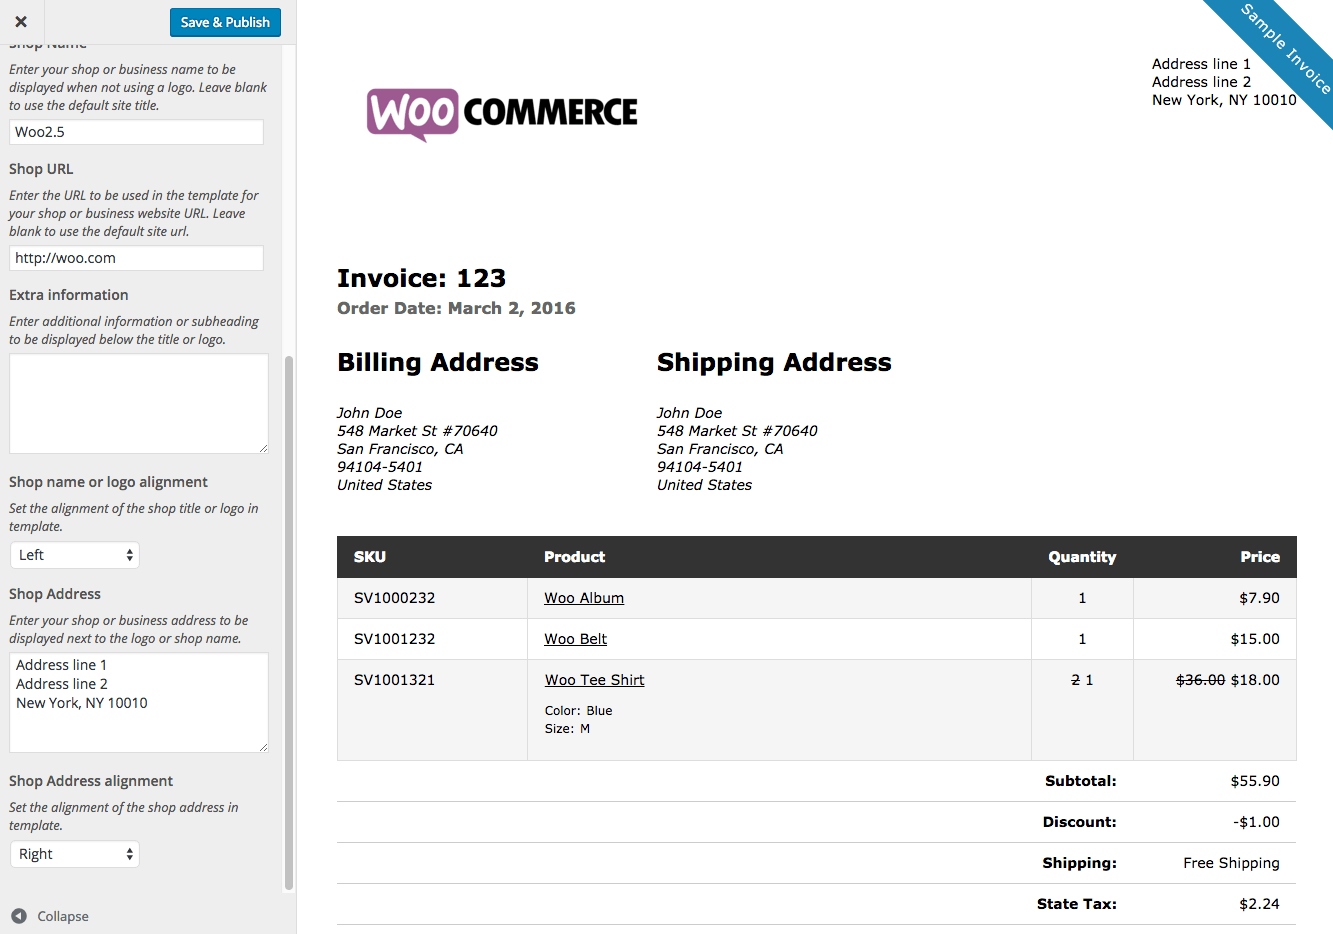 Ultrablogus  Sweet Woocommerce Print Invoices Amp Packing Lists  Woocommerce Docs With Magnificent Woocommerce Print Invoices  Packing Lists Customizer With Enchanting Child Care Receipt Also Walmart Receipt Template In Addition Where To Find Tracking Number On Usps Receipt And Best Receipt Scanner App As Well As Costco Return Policy Without Receipt Additionally Old Navy Return Policy Without Receipt From Docswoocommercecom With Ultrablogus  Magnificent Woocommerce Print Invoices Amp Packing Lists  Woocommerce Docs With Enchanting Woocommerce Print Invoices  Packing Lists Customizer And Sweet Child Care Receipt Also Walmart Receipt Template In Addition Where To Find Tracking Number On Usps Receipt From Docswoocommercecom